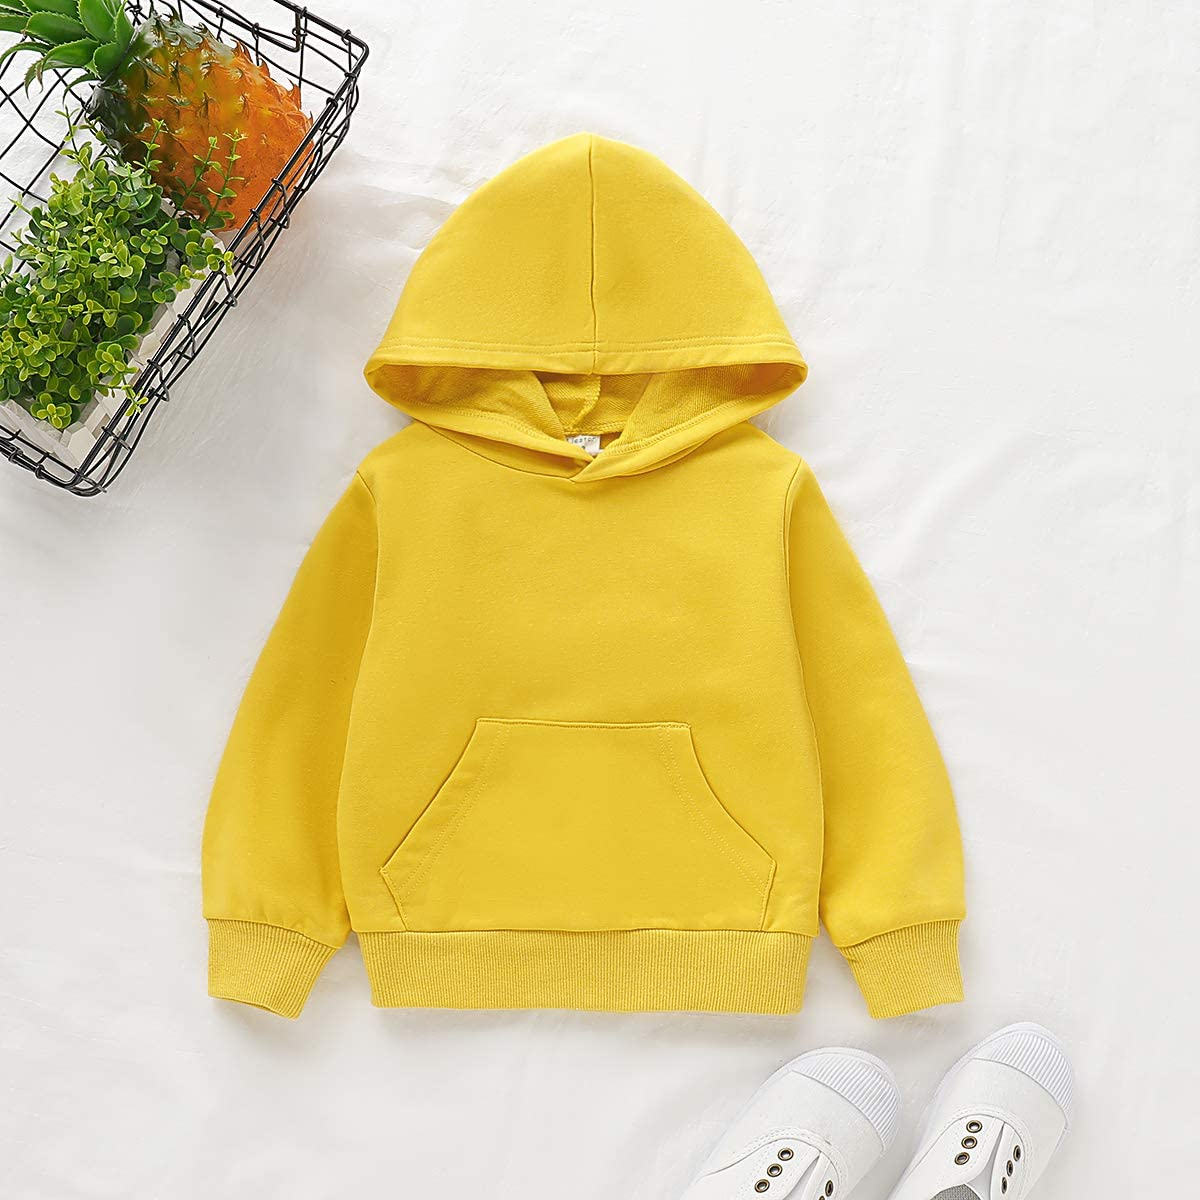 Toddler Kids Baby Boy Girl Long Sleeve Basic Solid Hoodie Pullover Sweatshirt Sports Tops with Pockets Outfits